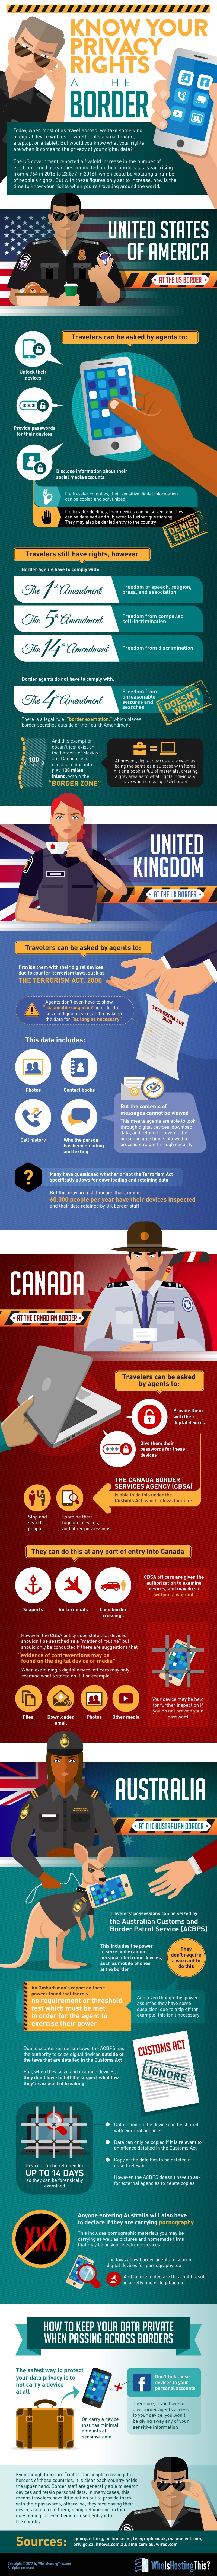 Know Your Privacy Rights at the Border [Infographic]